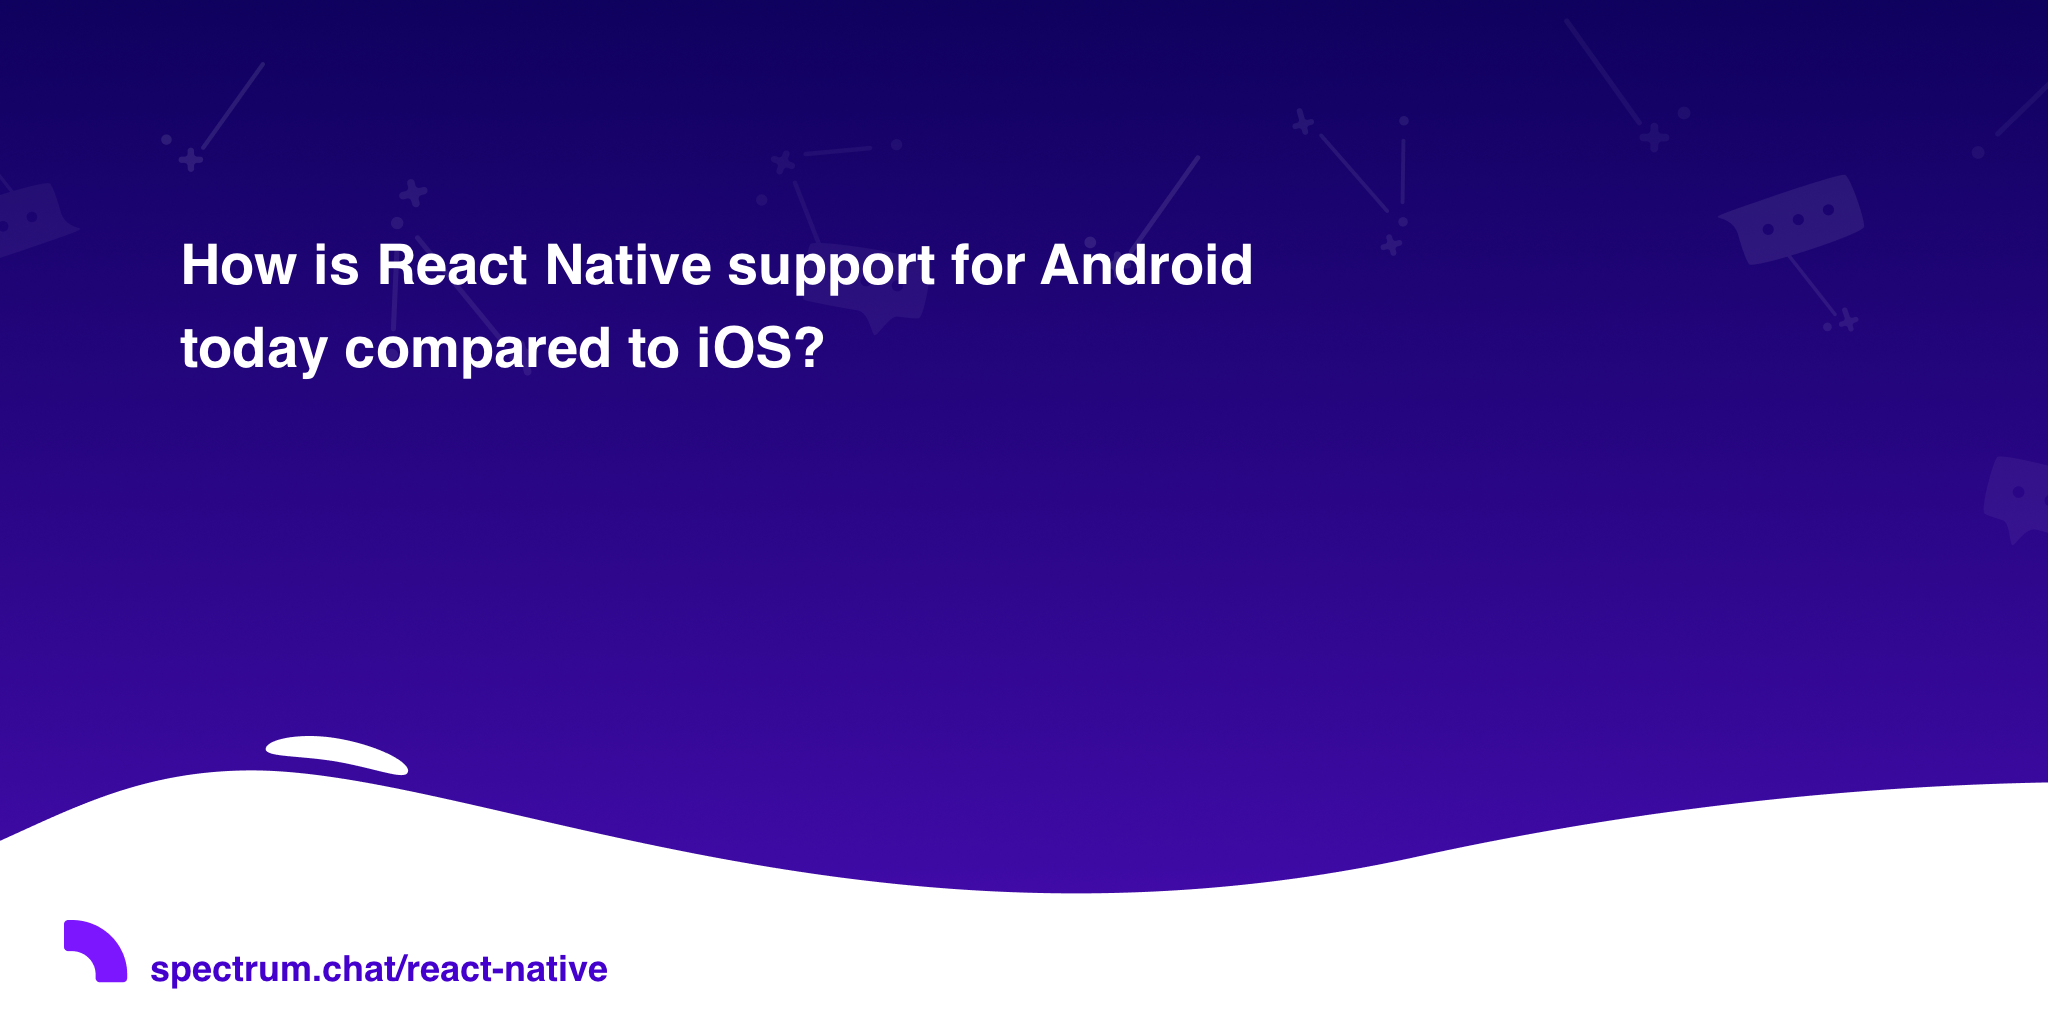 How is React Native support for Android today compared to iOS